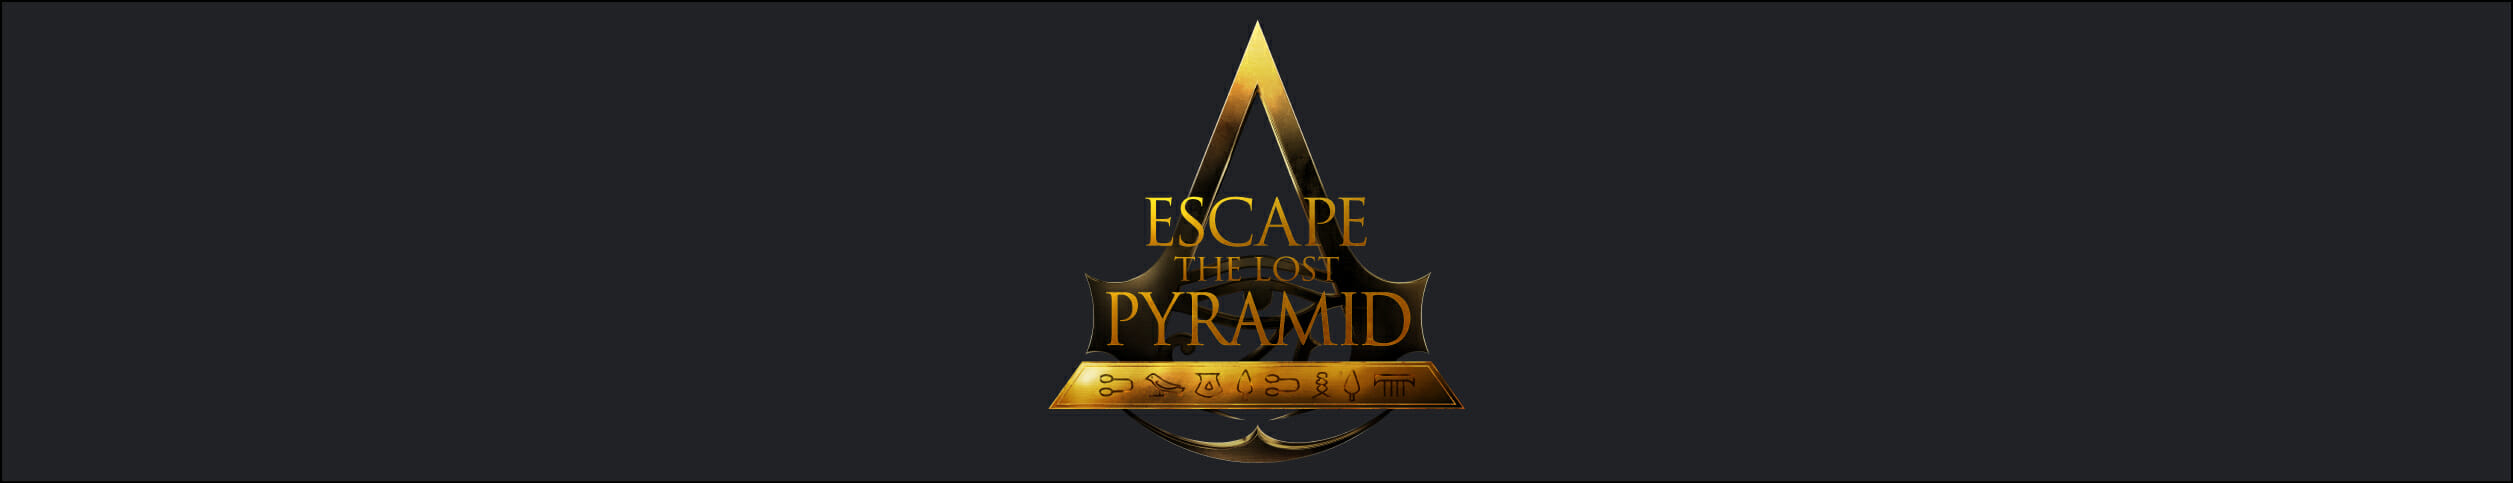 escape the lost pyramid lyon